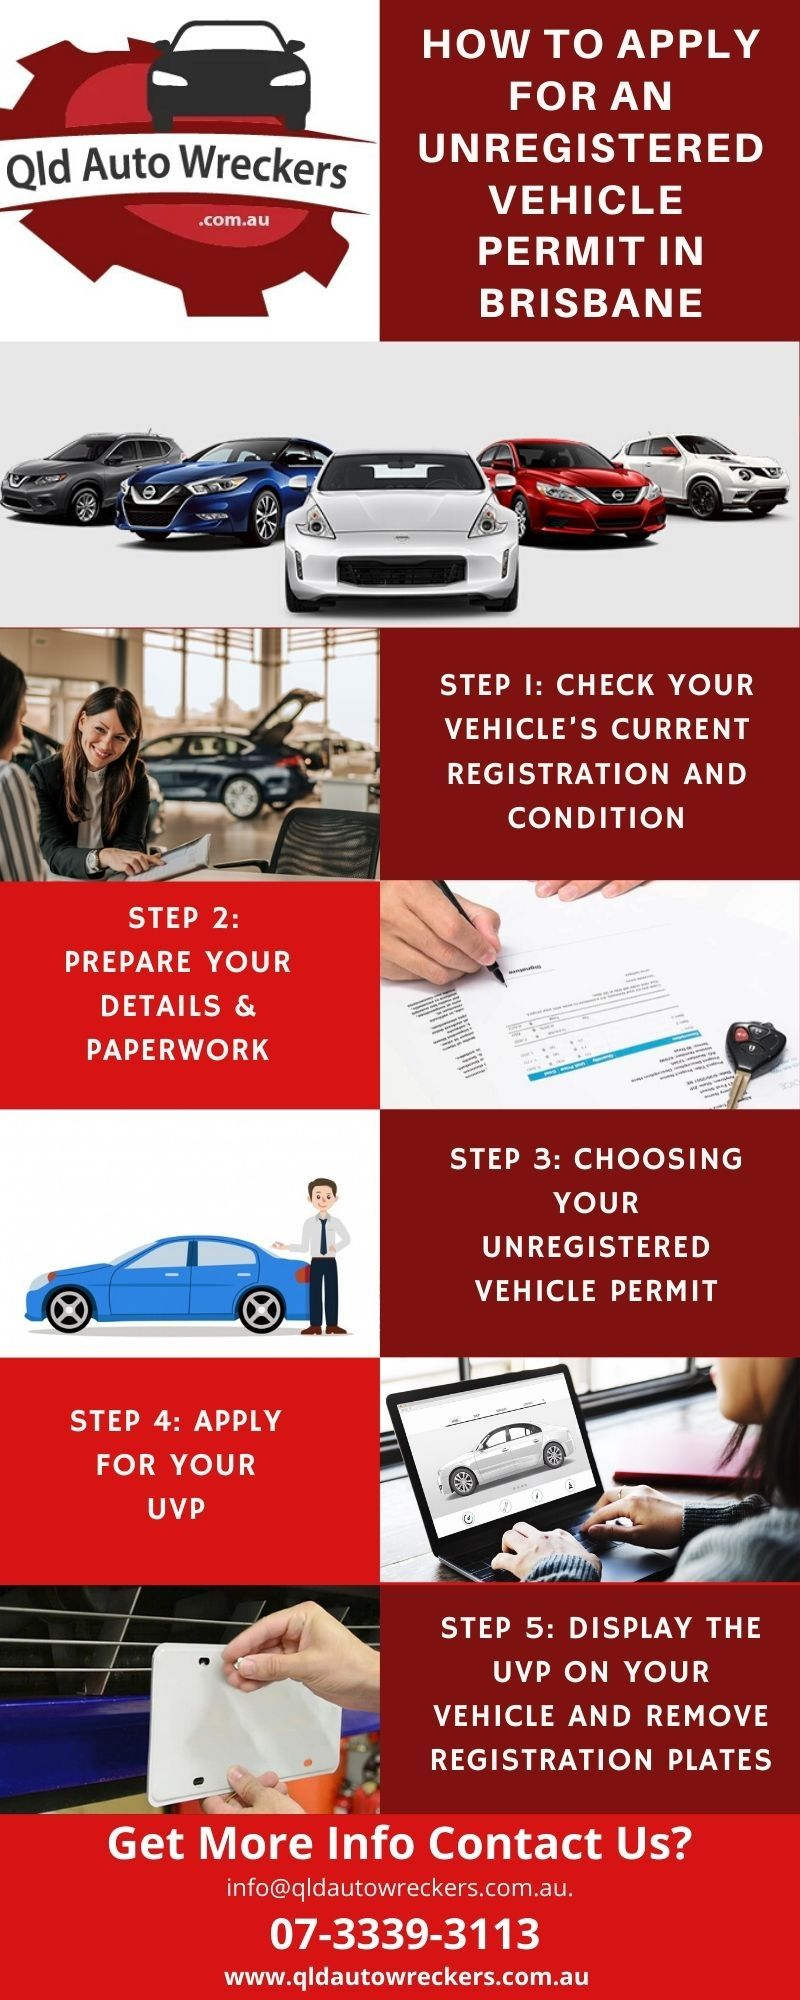 Apply For An Unregistered Vehicle Permit Brisbane How To Apply